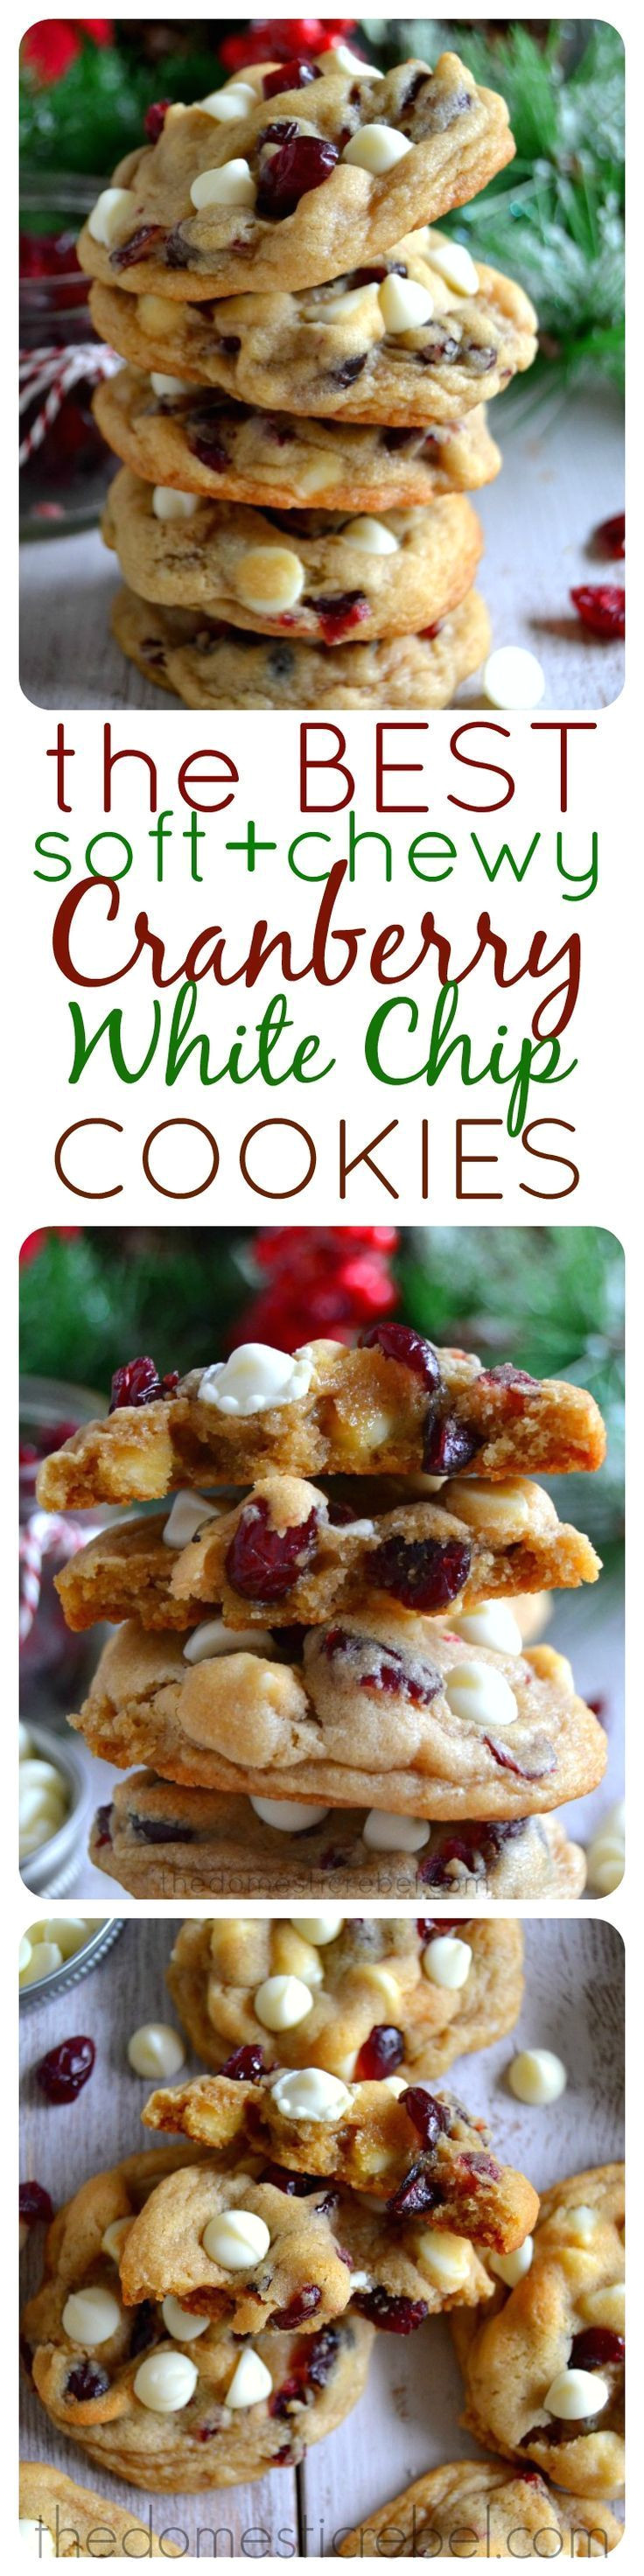 the best soft chewy cranberry white chip cookies tart bright cranberries and sweet